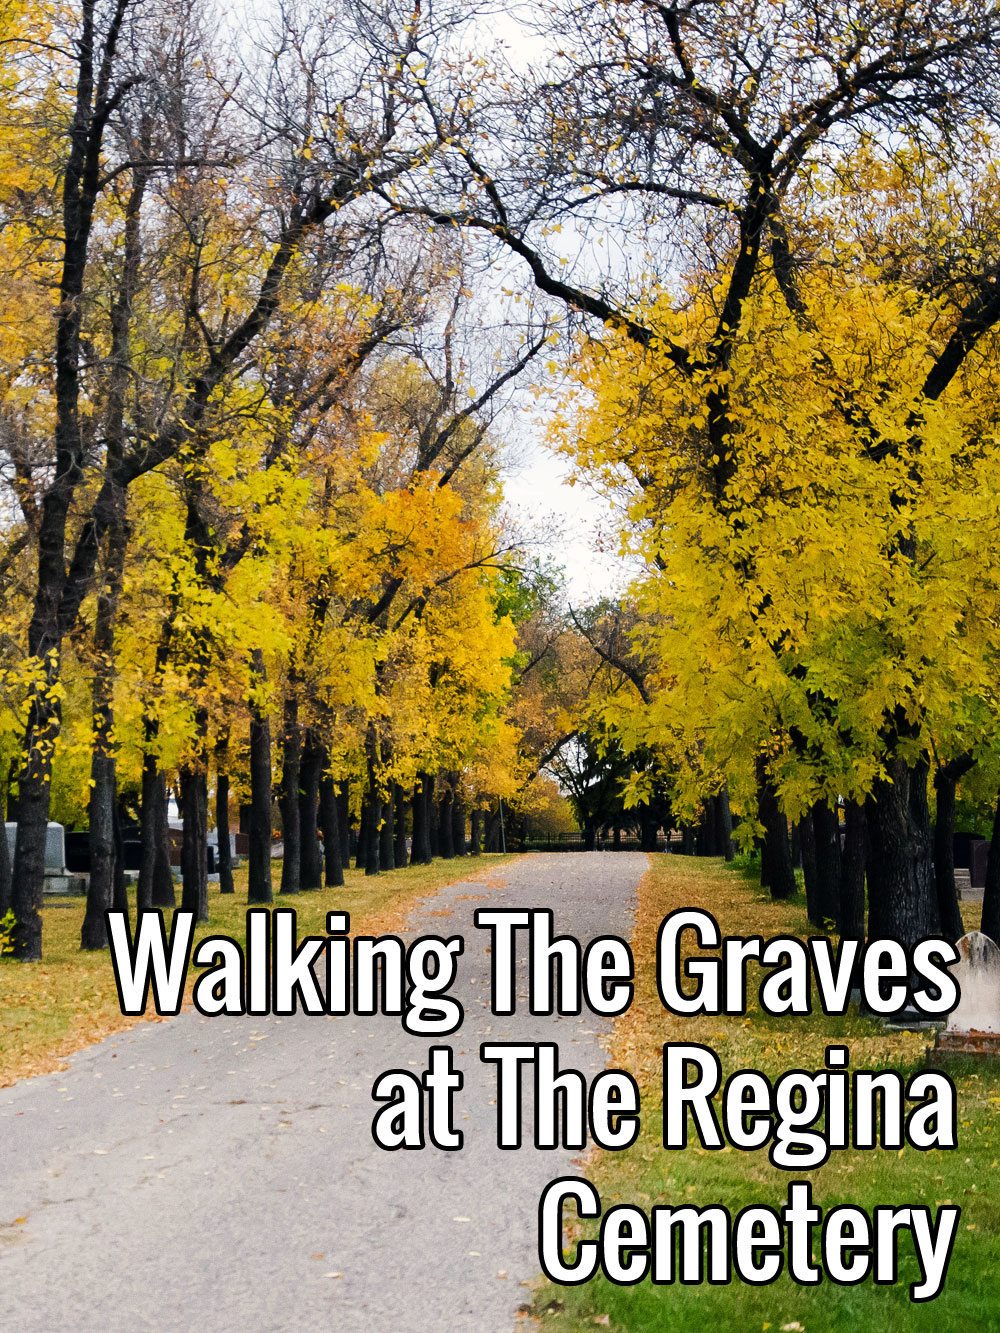 Walking The Graves at The Regina Cemetery